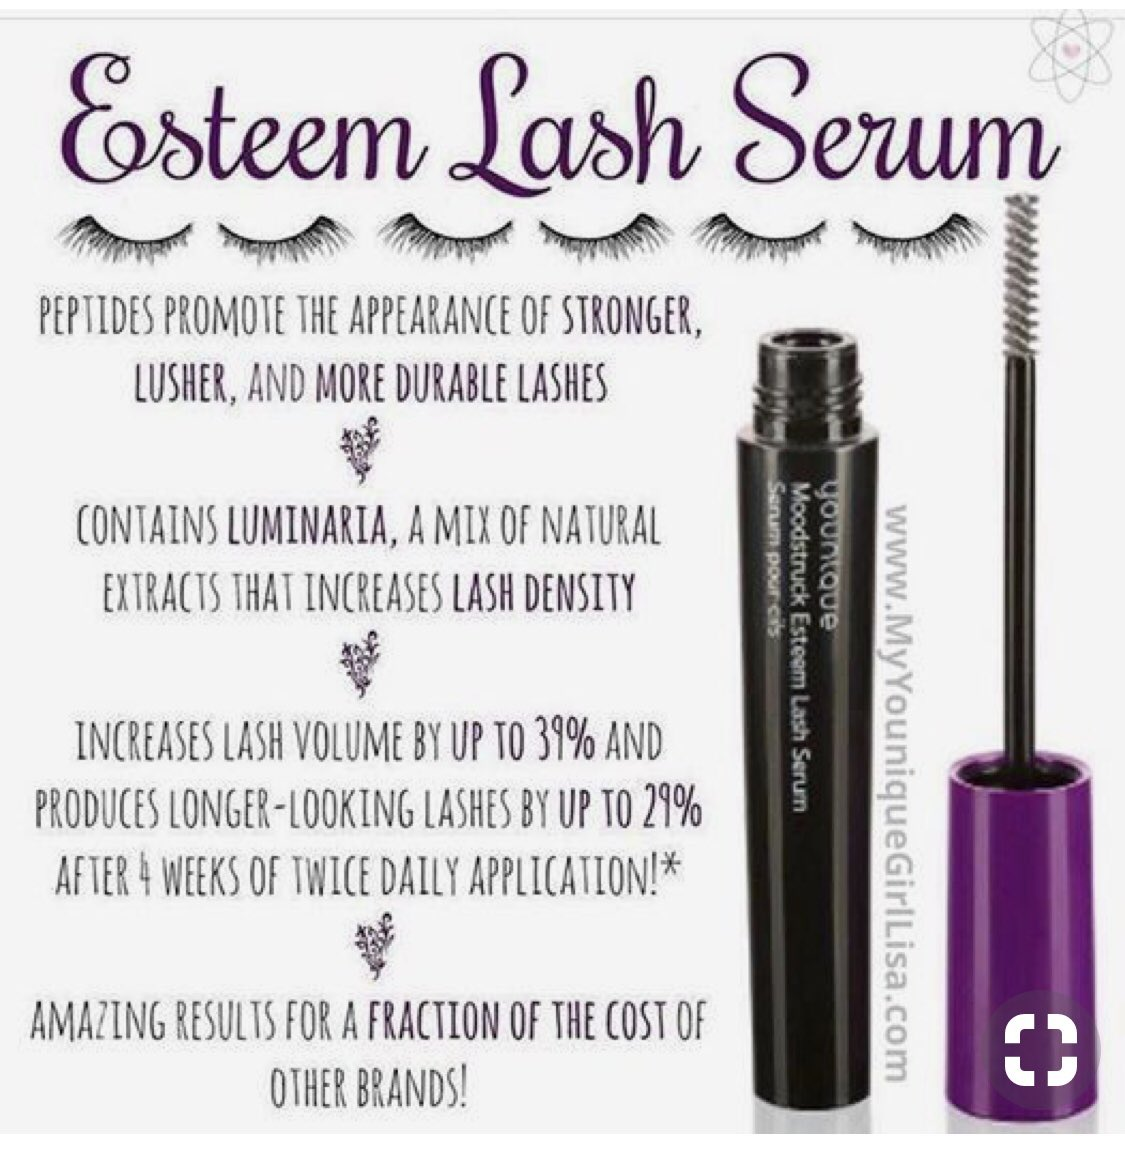 404d919bbbc Younique's Esteem Lash Serum is amazing! If you would LOVE lush lashes,  this is for you! #lashes #longlashes #lushlashes Visit my Younique Website  ...